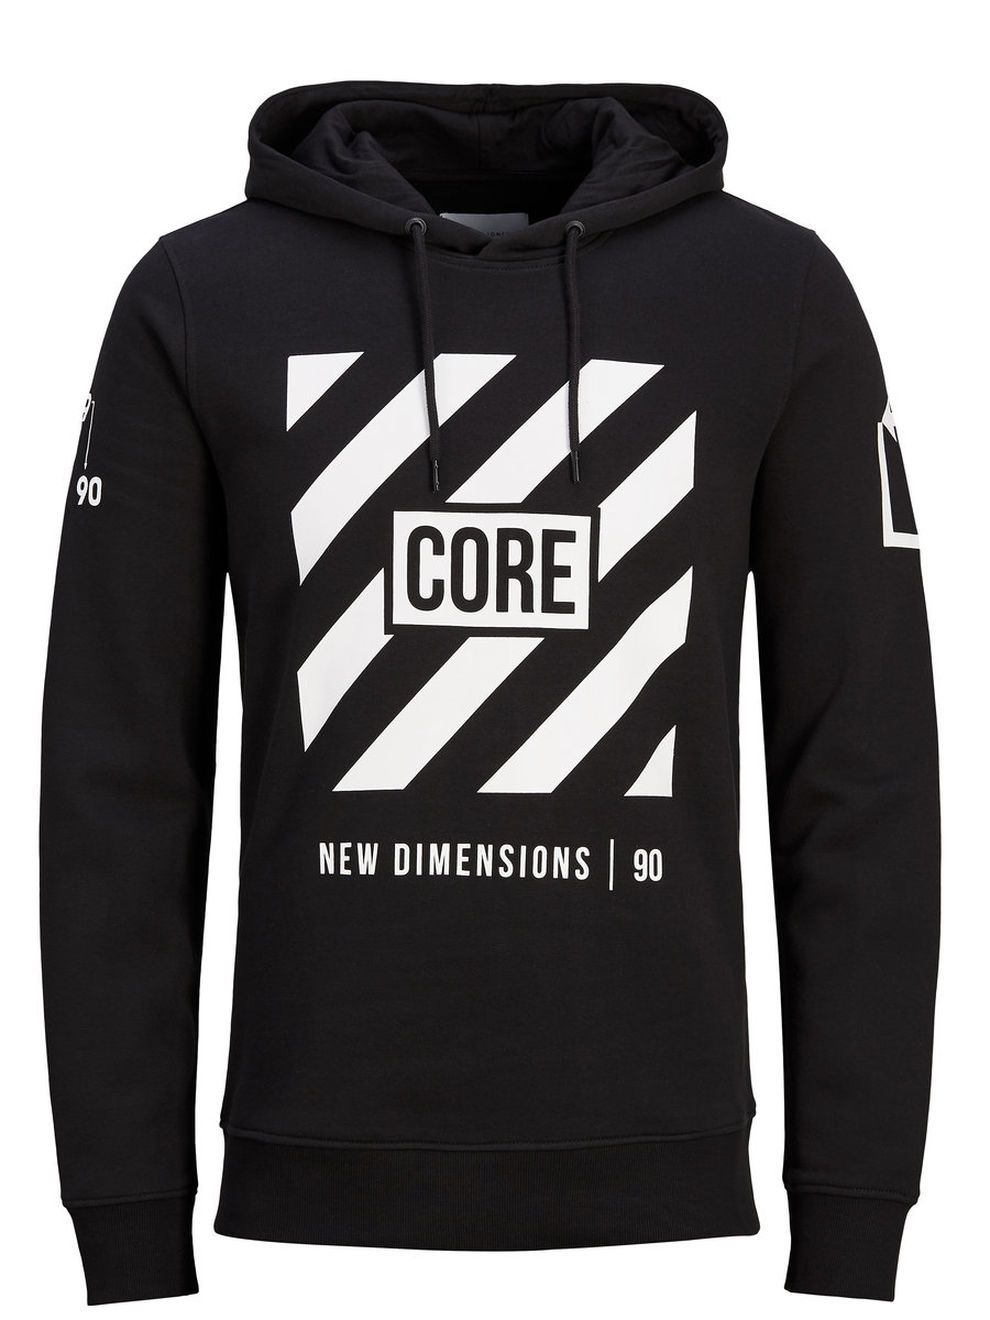 Regular Fit Style With Hoodie Soft Brushed Cotton On The Inside Strong Graphic Front Print The Model Is Weari Mens Sweatshirts Hoodie Sweatshirts Hoodies [ 1320 x 990 Pixel ]